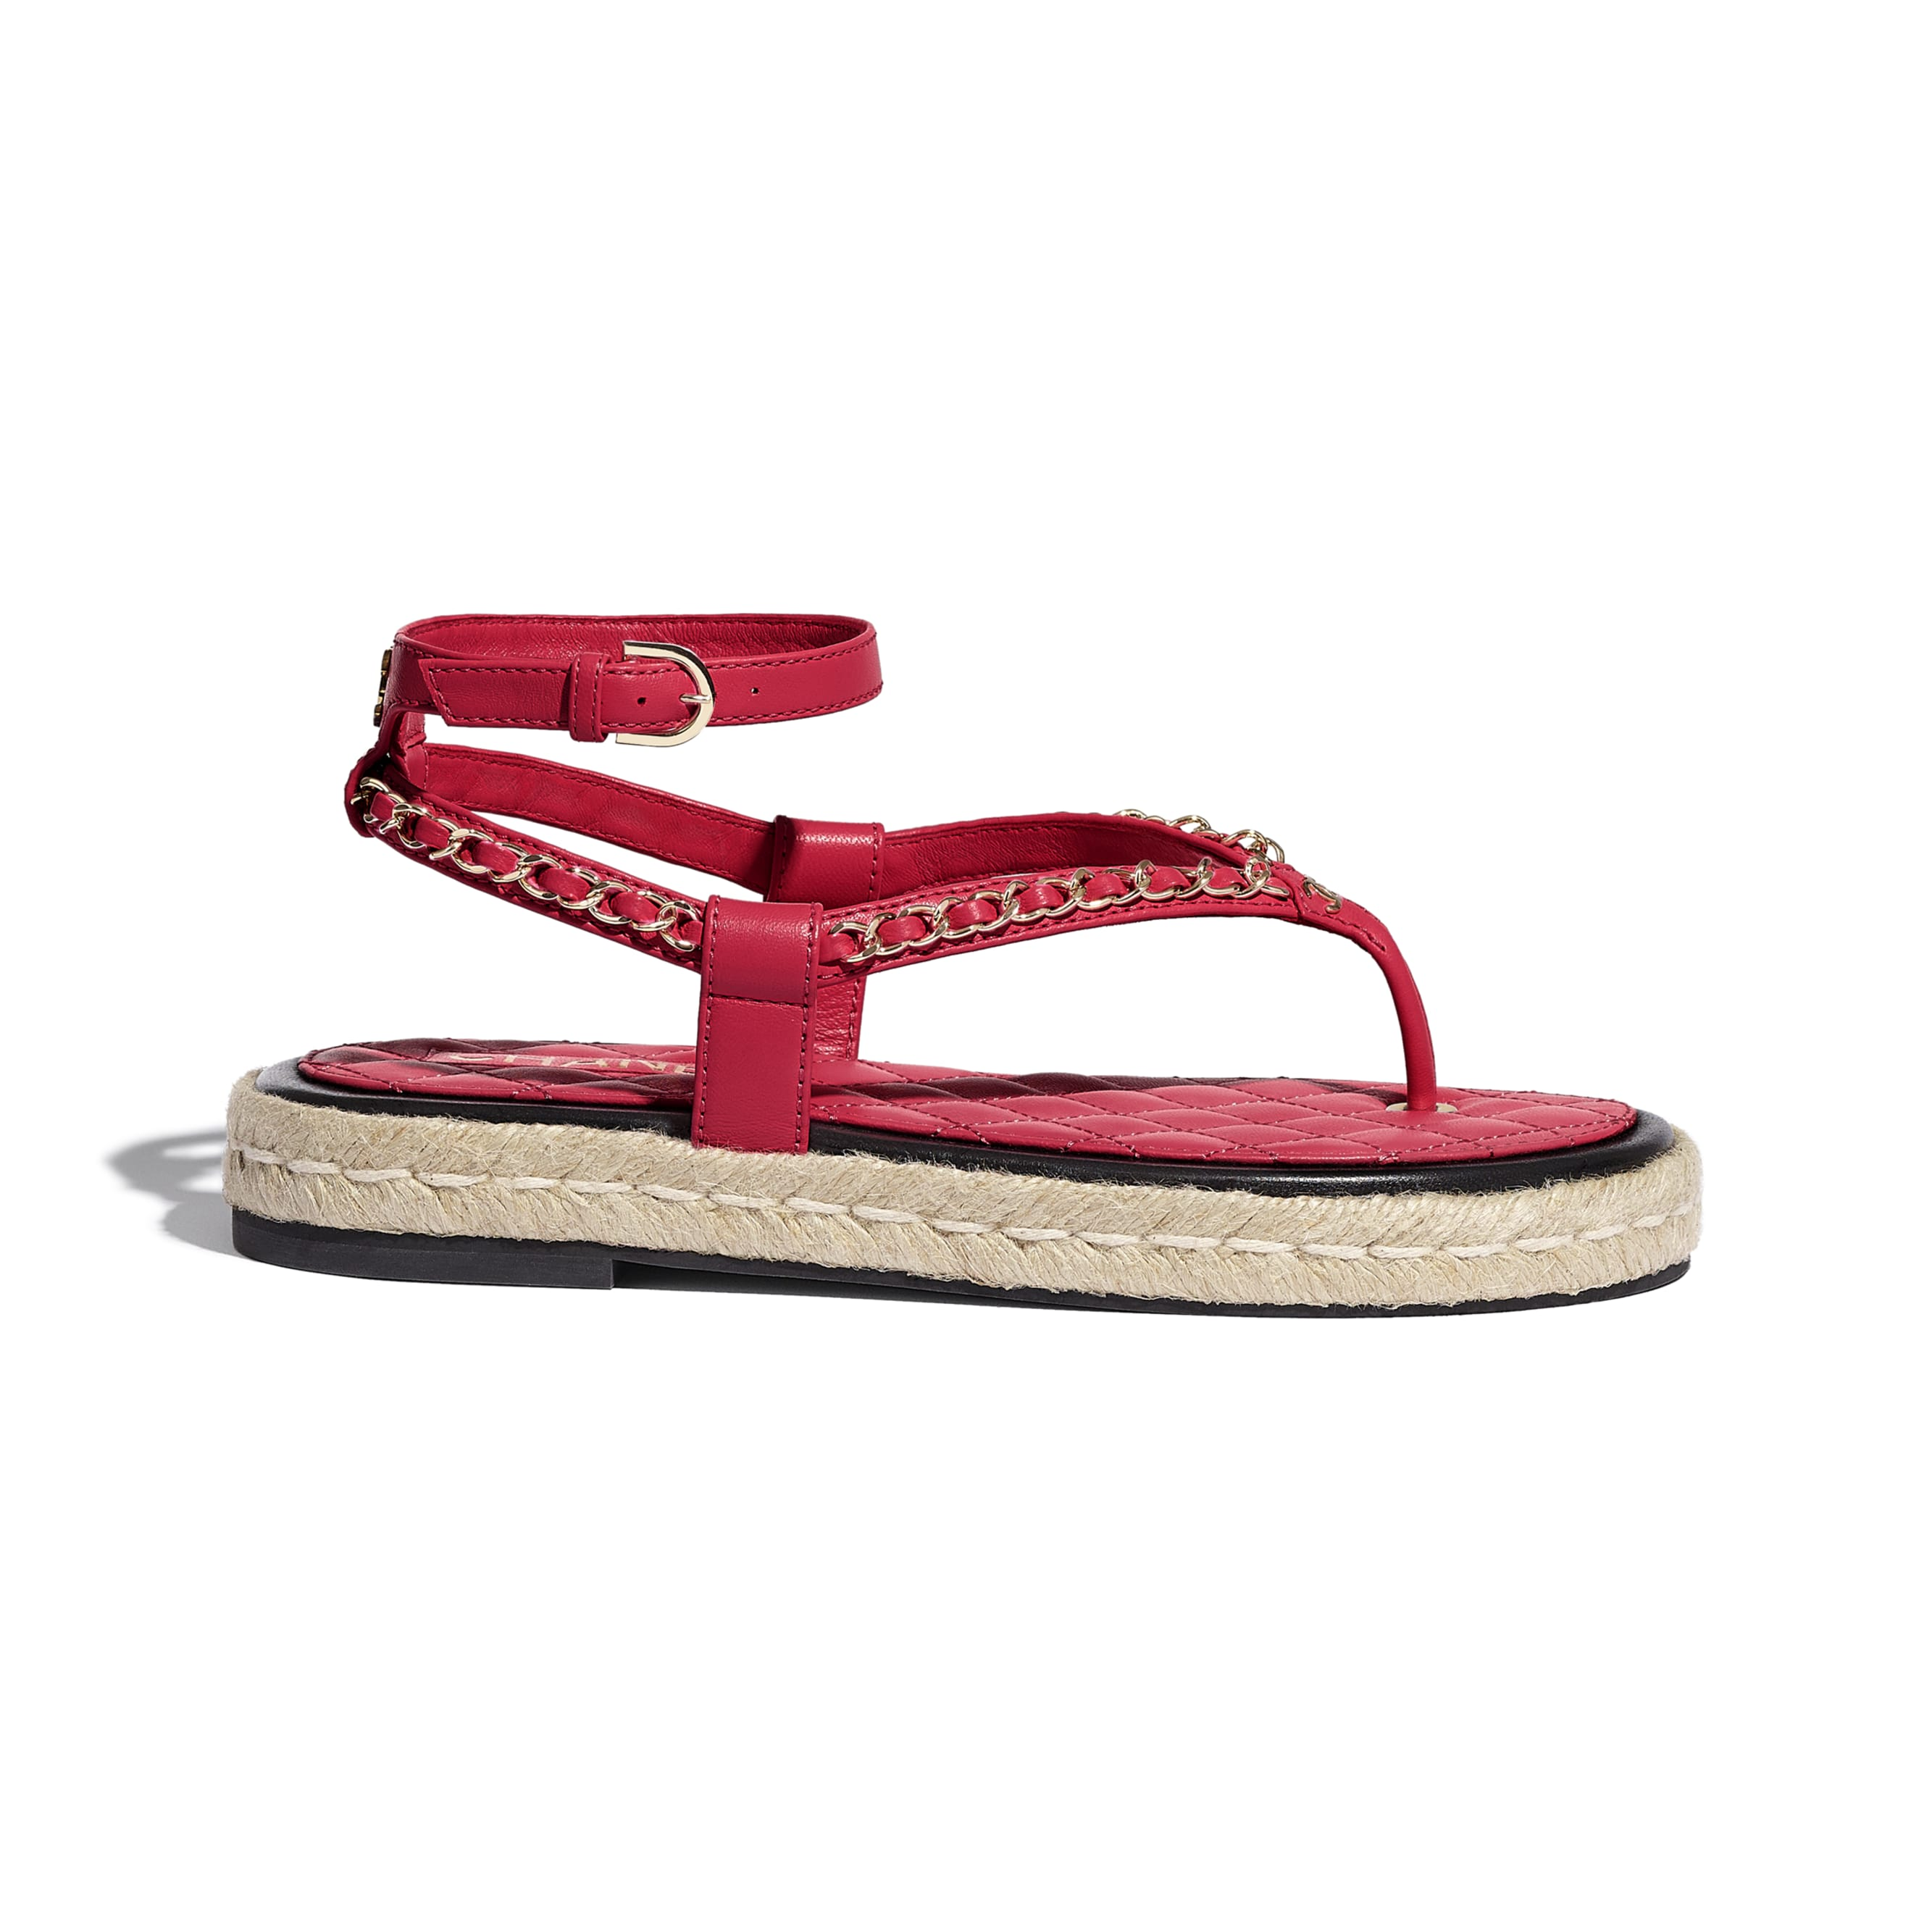 Sandals - Red - Lambskin - CHANEL - Default view - see standard sized version